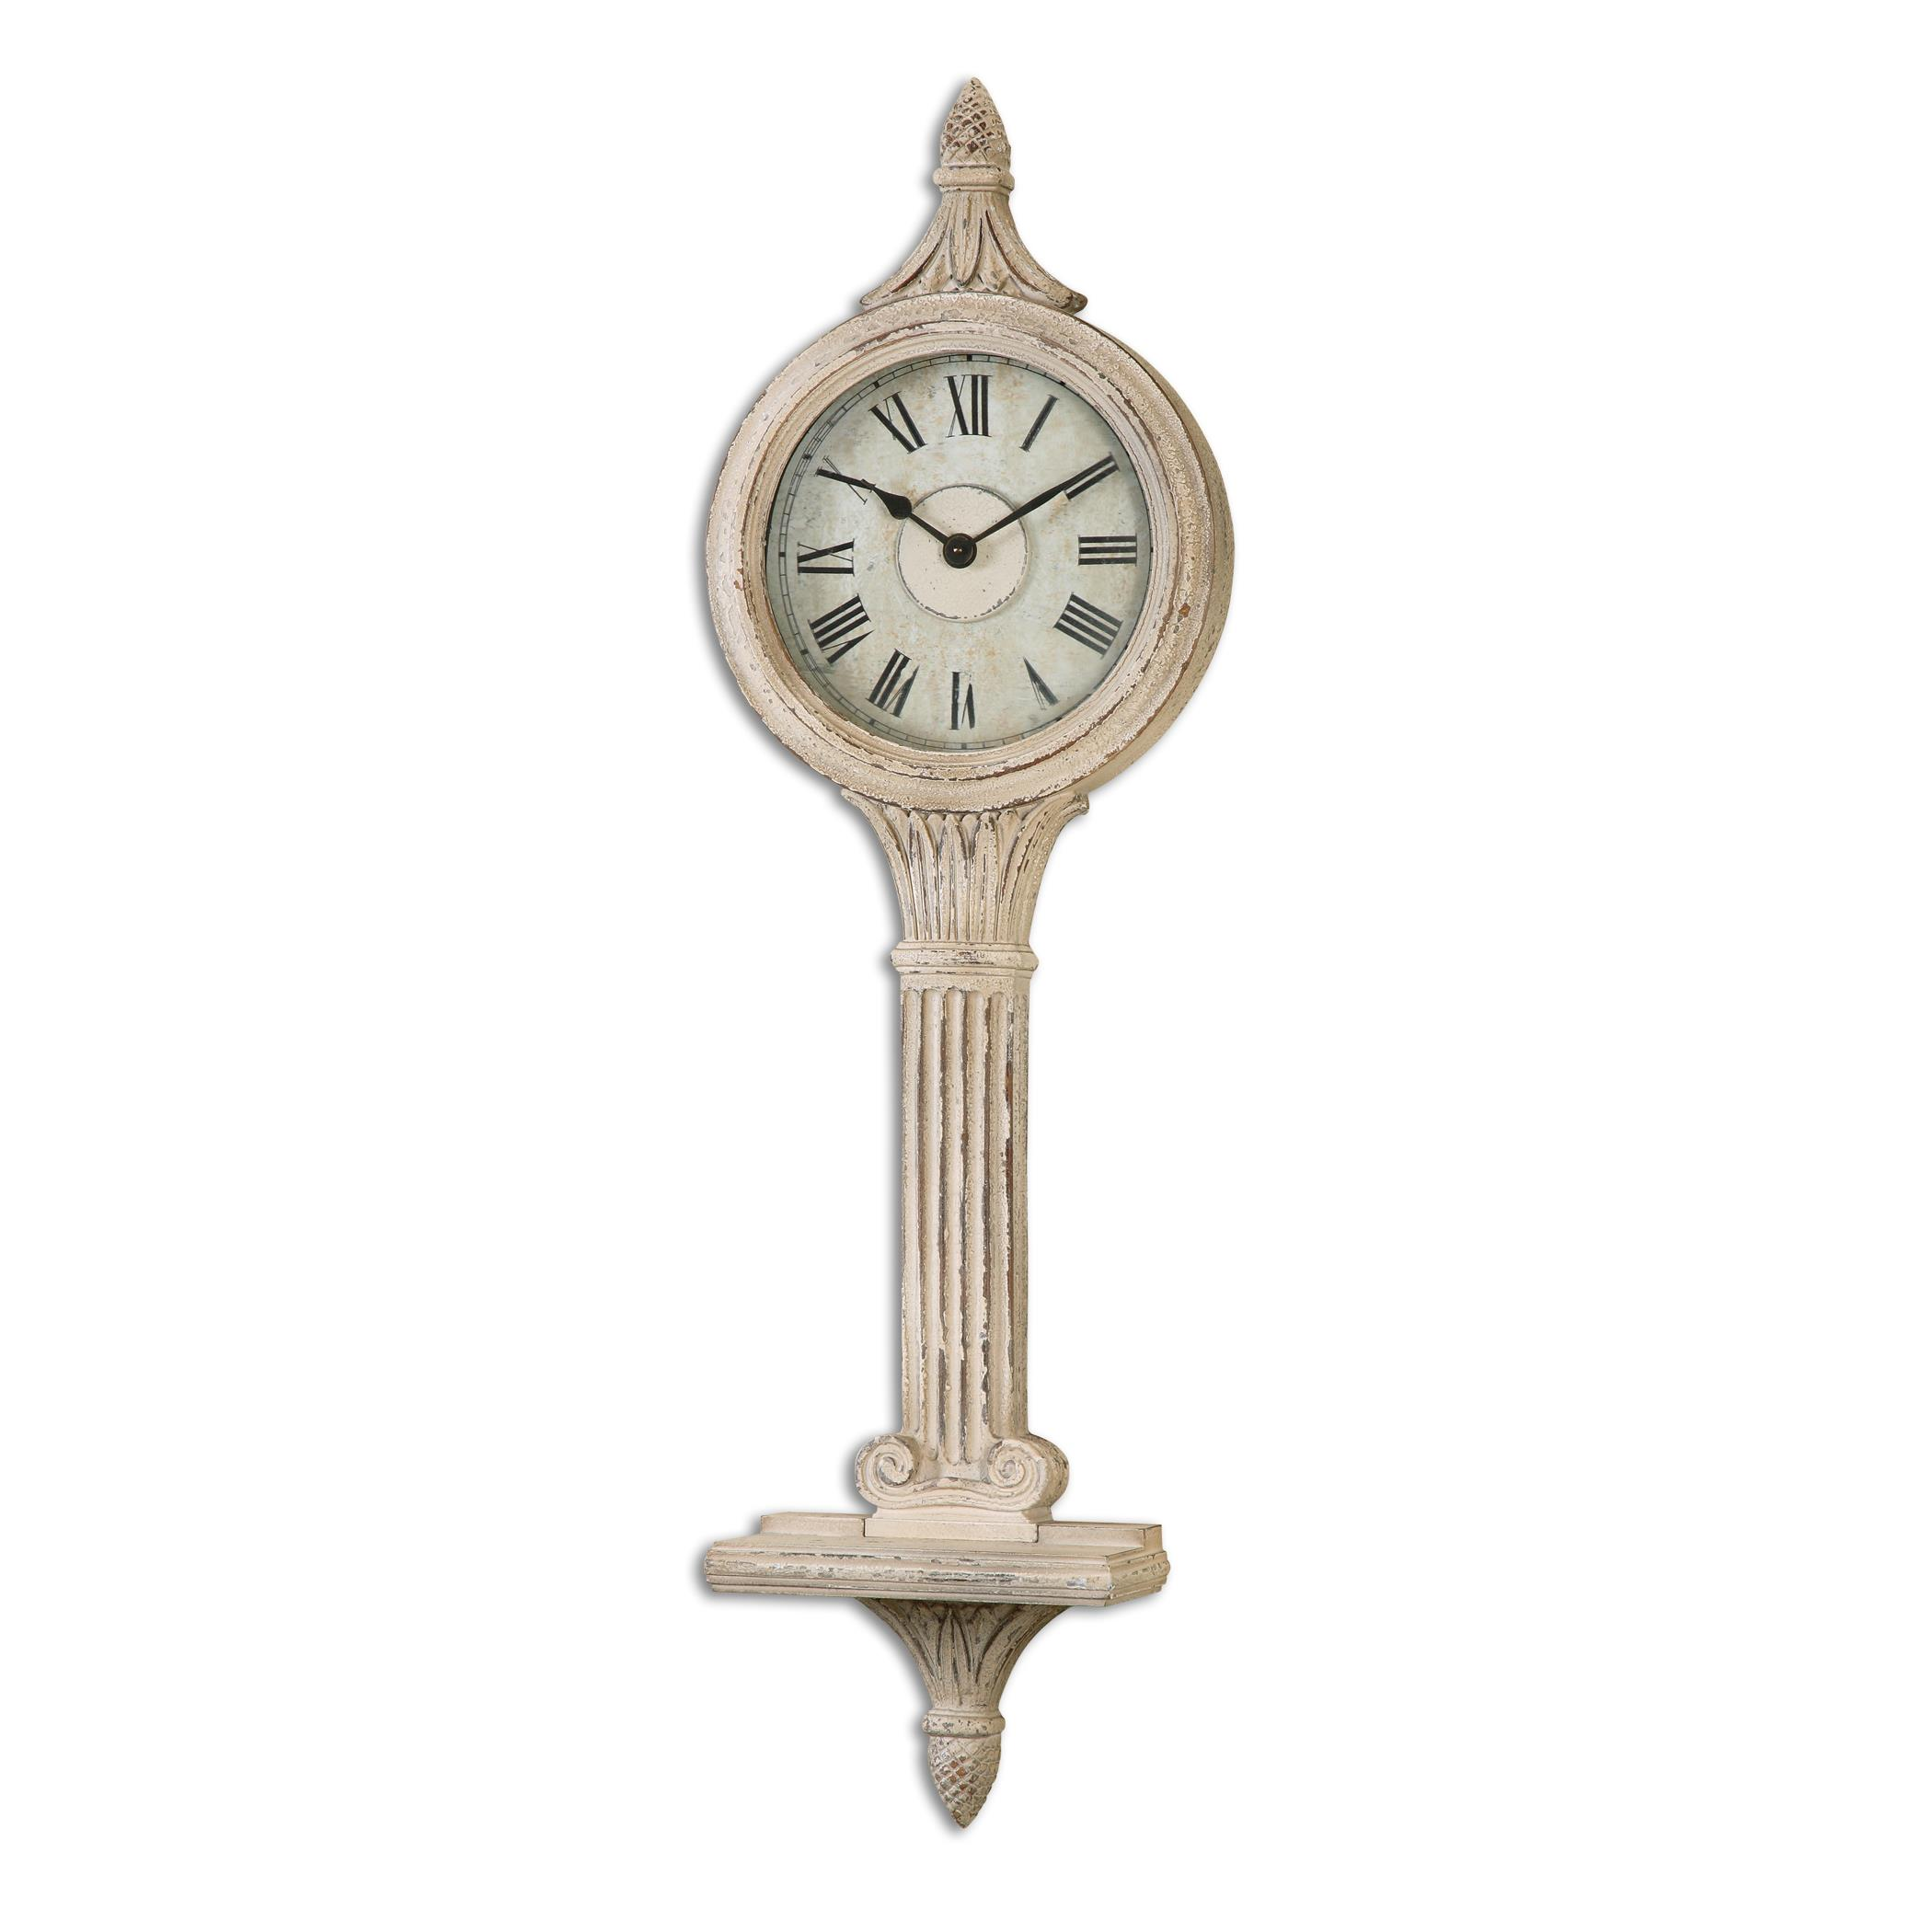 Uttermost Clocks Louisa Antiqued Ivory Wall Clocks - Item Number: 06427